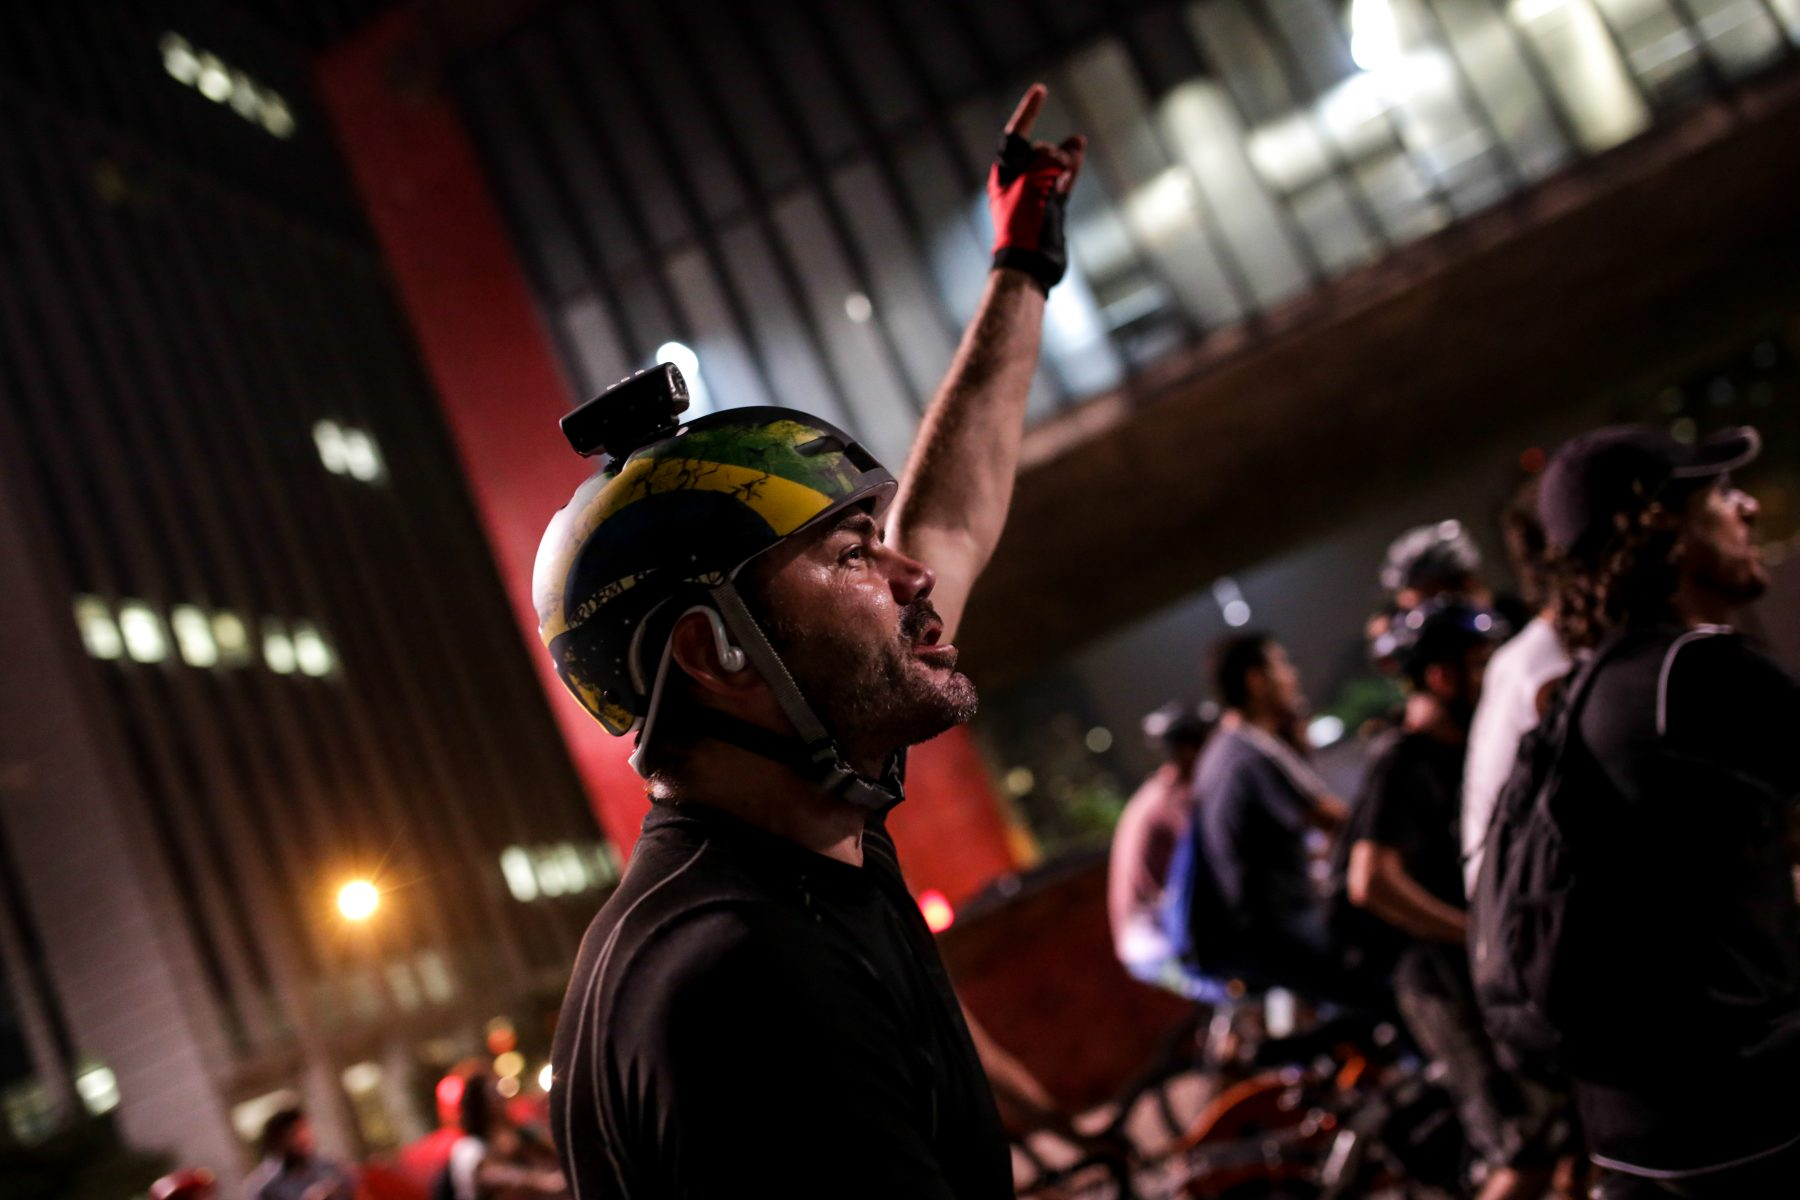 A cyclist shouts during a protest that gathered thousands of cyclists in favor of the construction of bike lanes on Paulista Avenue in Sao Paulo, Brazil on Friday, March 27, 2015. The protest, which won support from by cyclists from various cities in the world, is in response to the attempt of a city's attorney to stop the implementation of bike lanes by the mayor of Sao Paulo. (Photo by Tiago Mazza Chiaravalloti/NurPhoto)